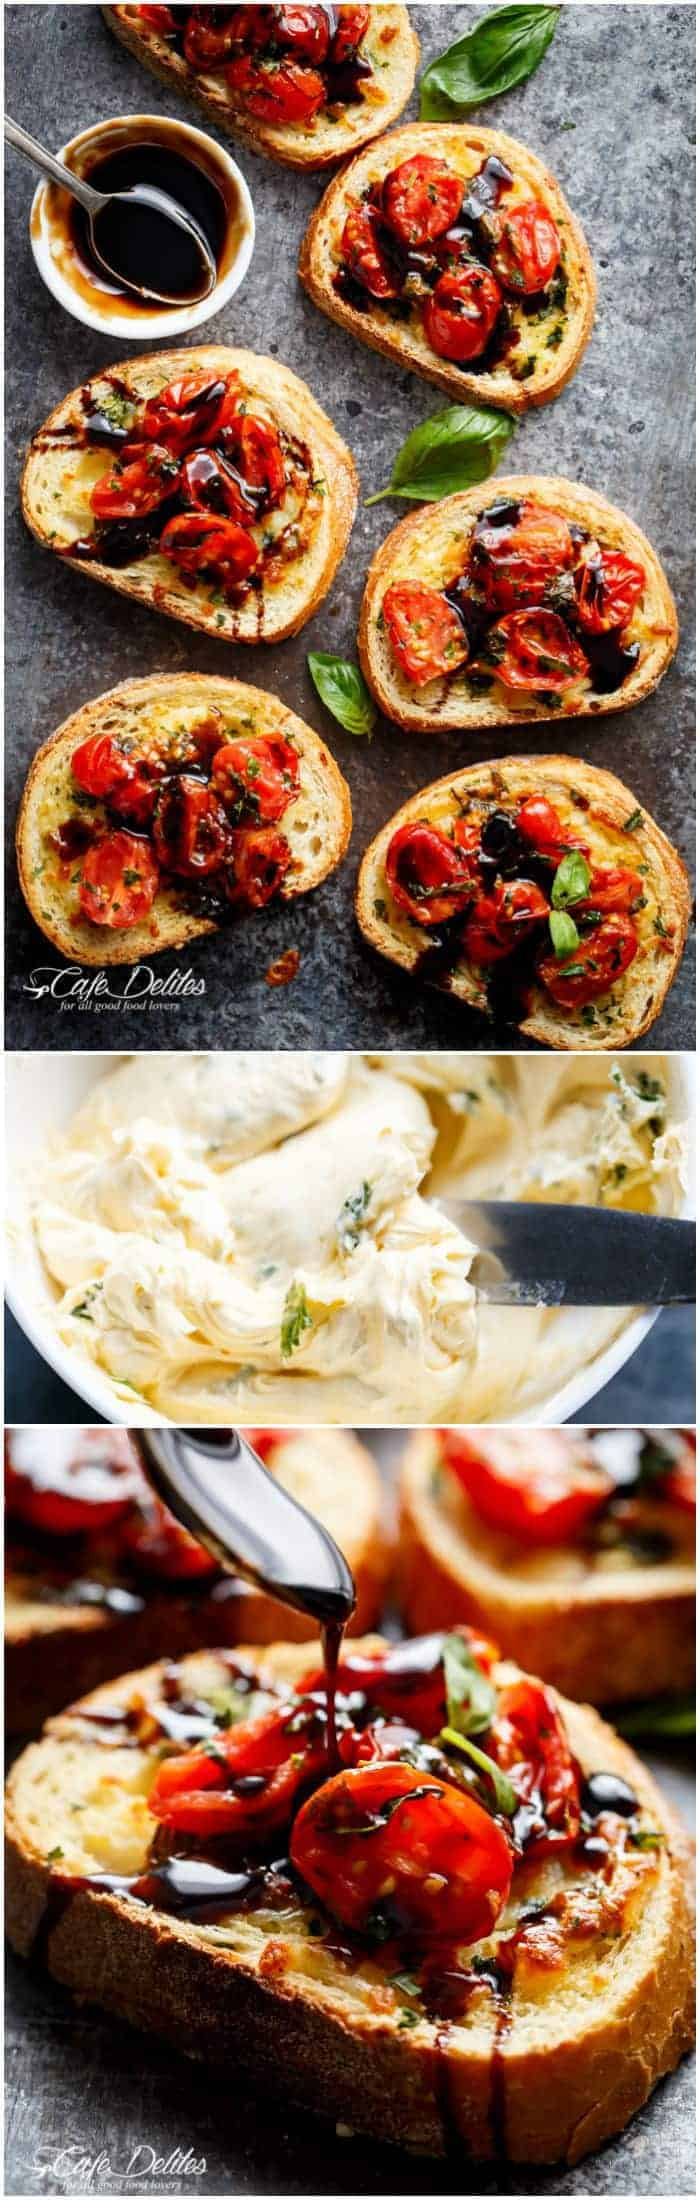 Tomato Caprese Garlic Breads with melted mozzarella cheese is taking a normal Garlic Bread and transforming it into something incredible in minutes! | https://cafedelites.com